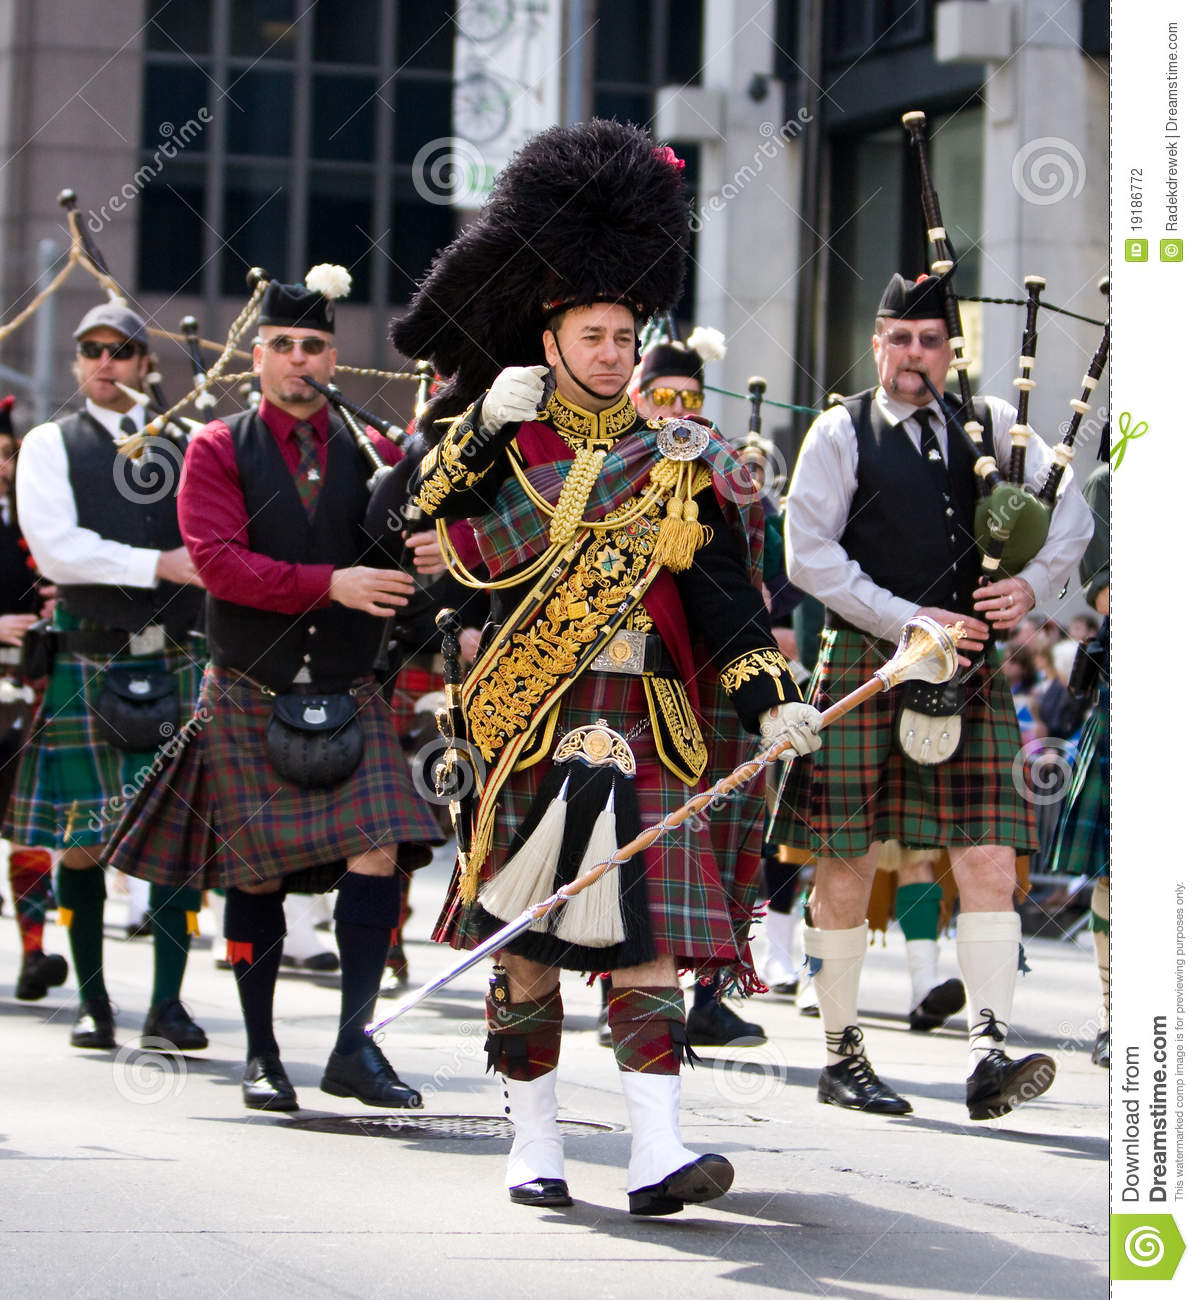 Scottish Bagpipe Band Editorial Photography Image 19186772